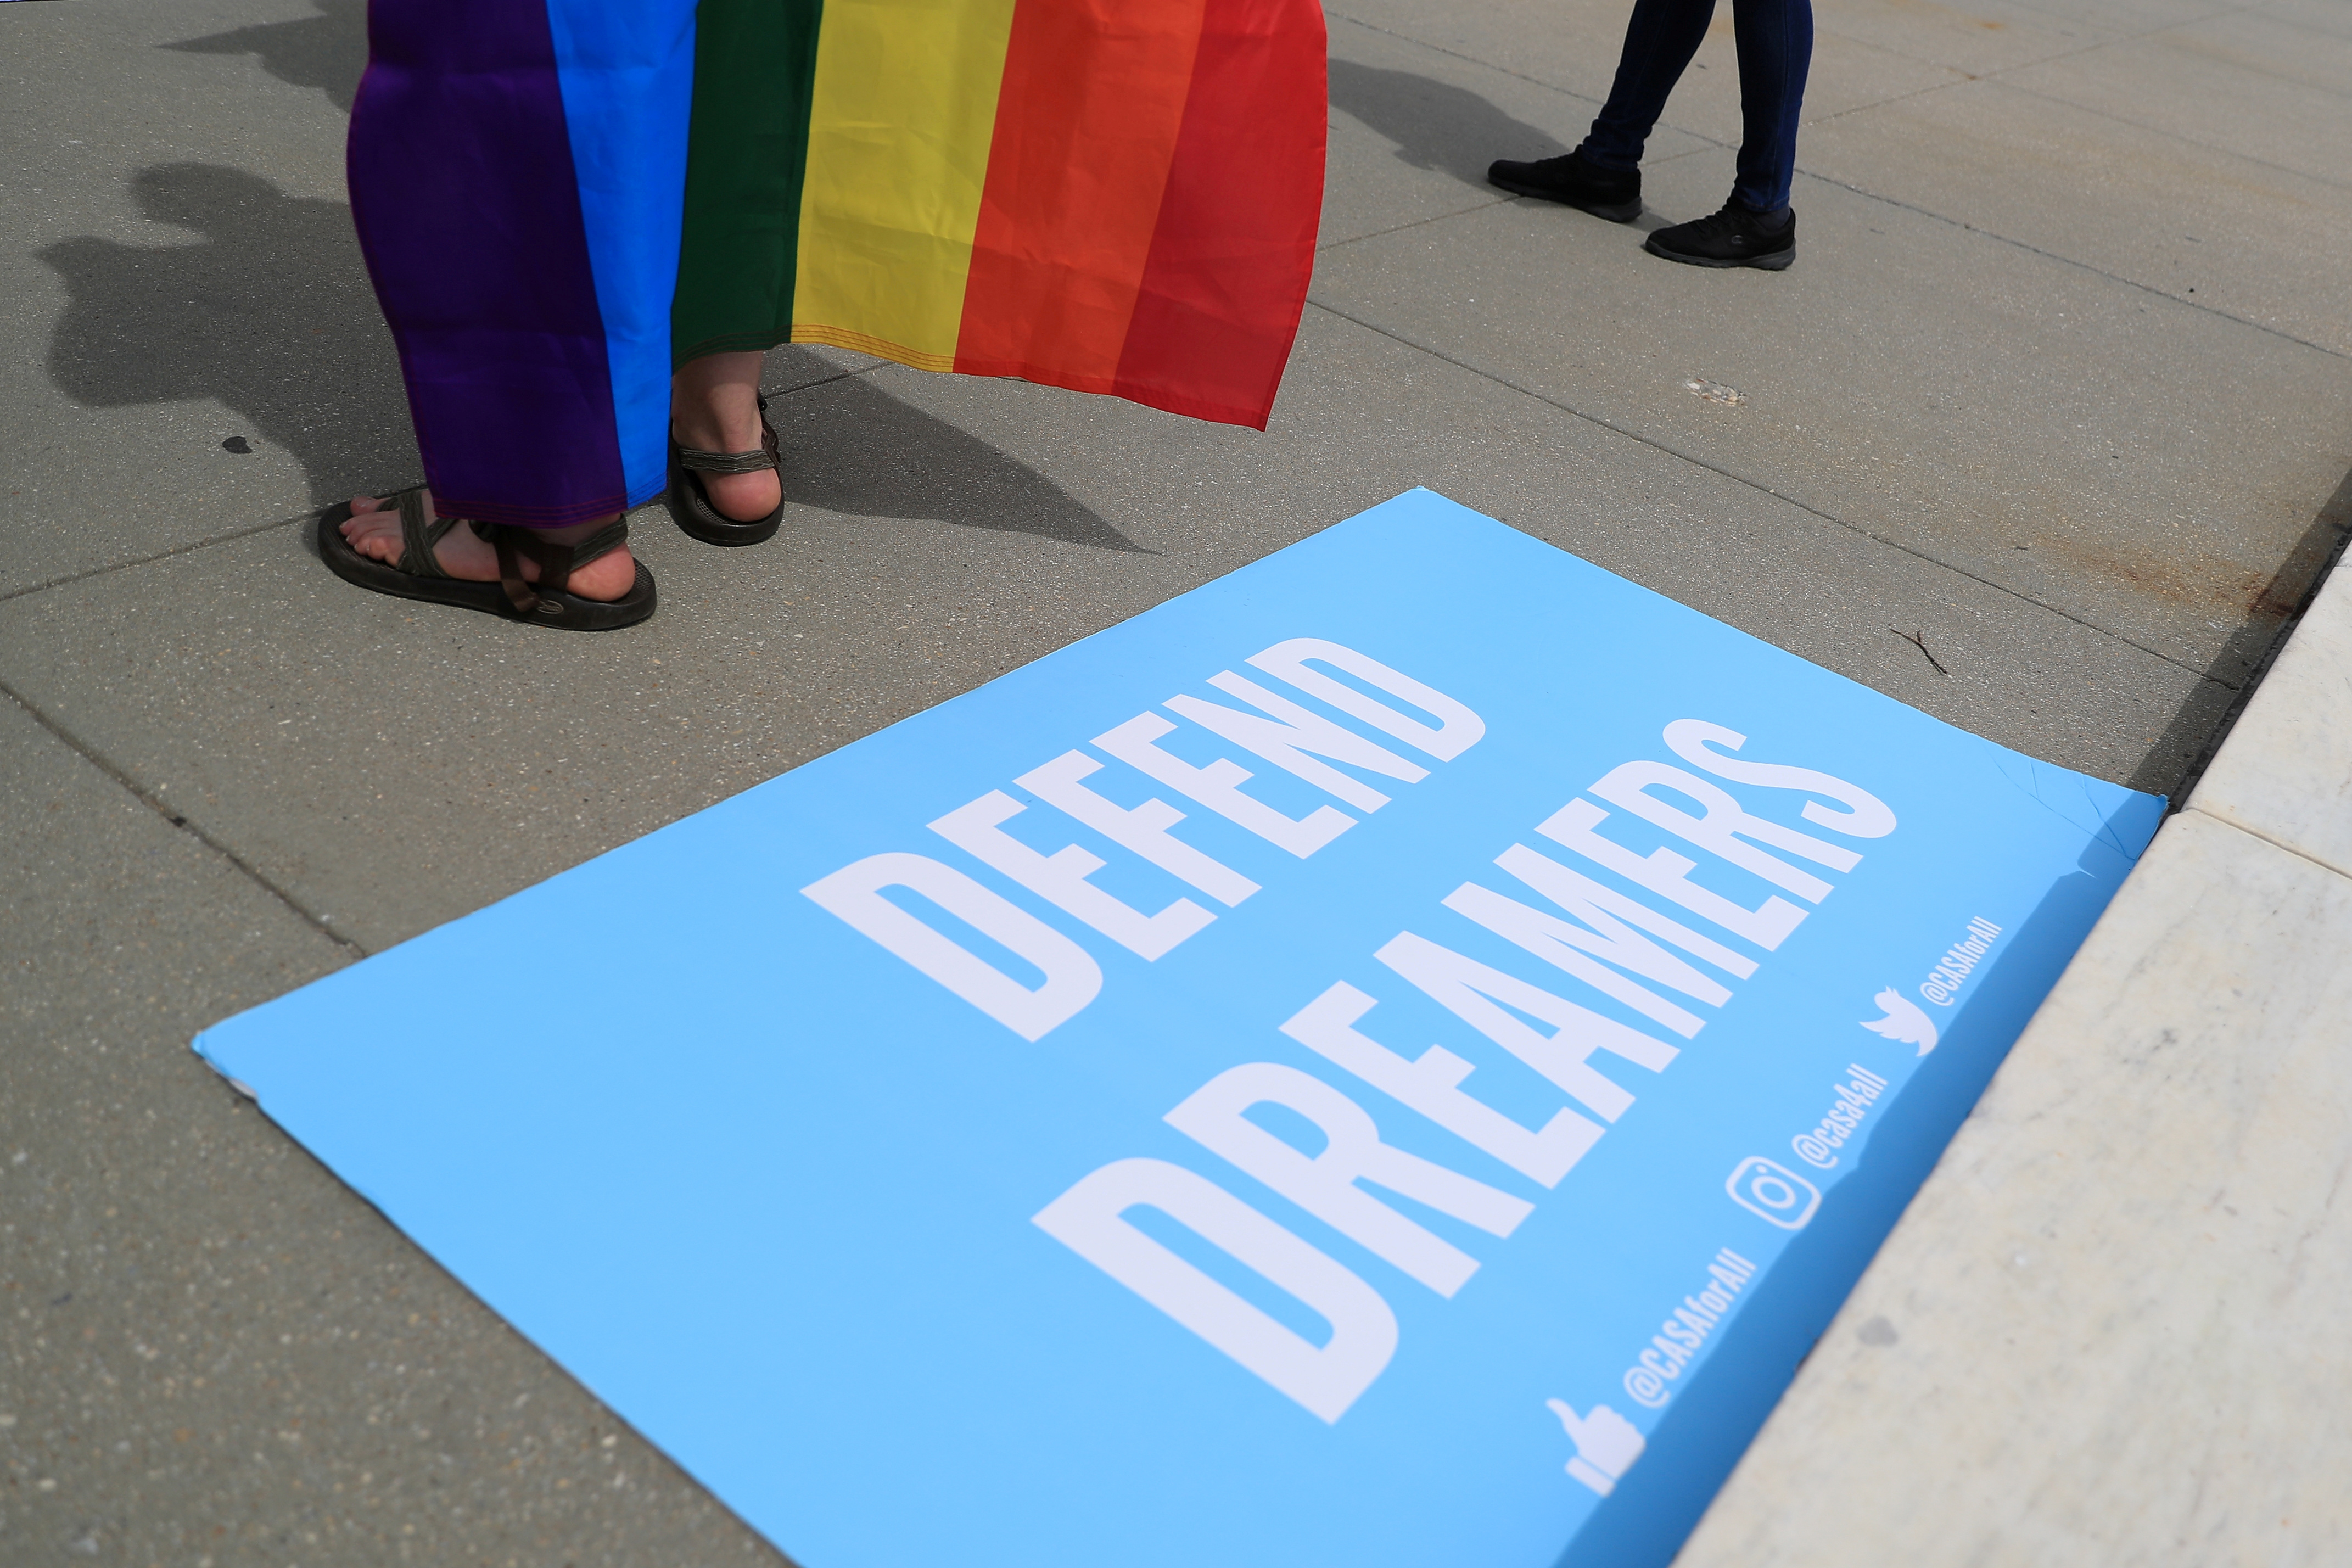 A sign in support of DACA Dreamers lies at the steps of the U.S. Supreme Court after the court declined to hear a Trump administration challenge to California's sanctuary laws, in Washington, D.C. June 15, 2020. REUTERS/Tom Brenner